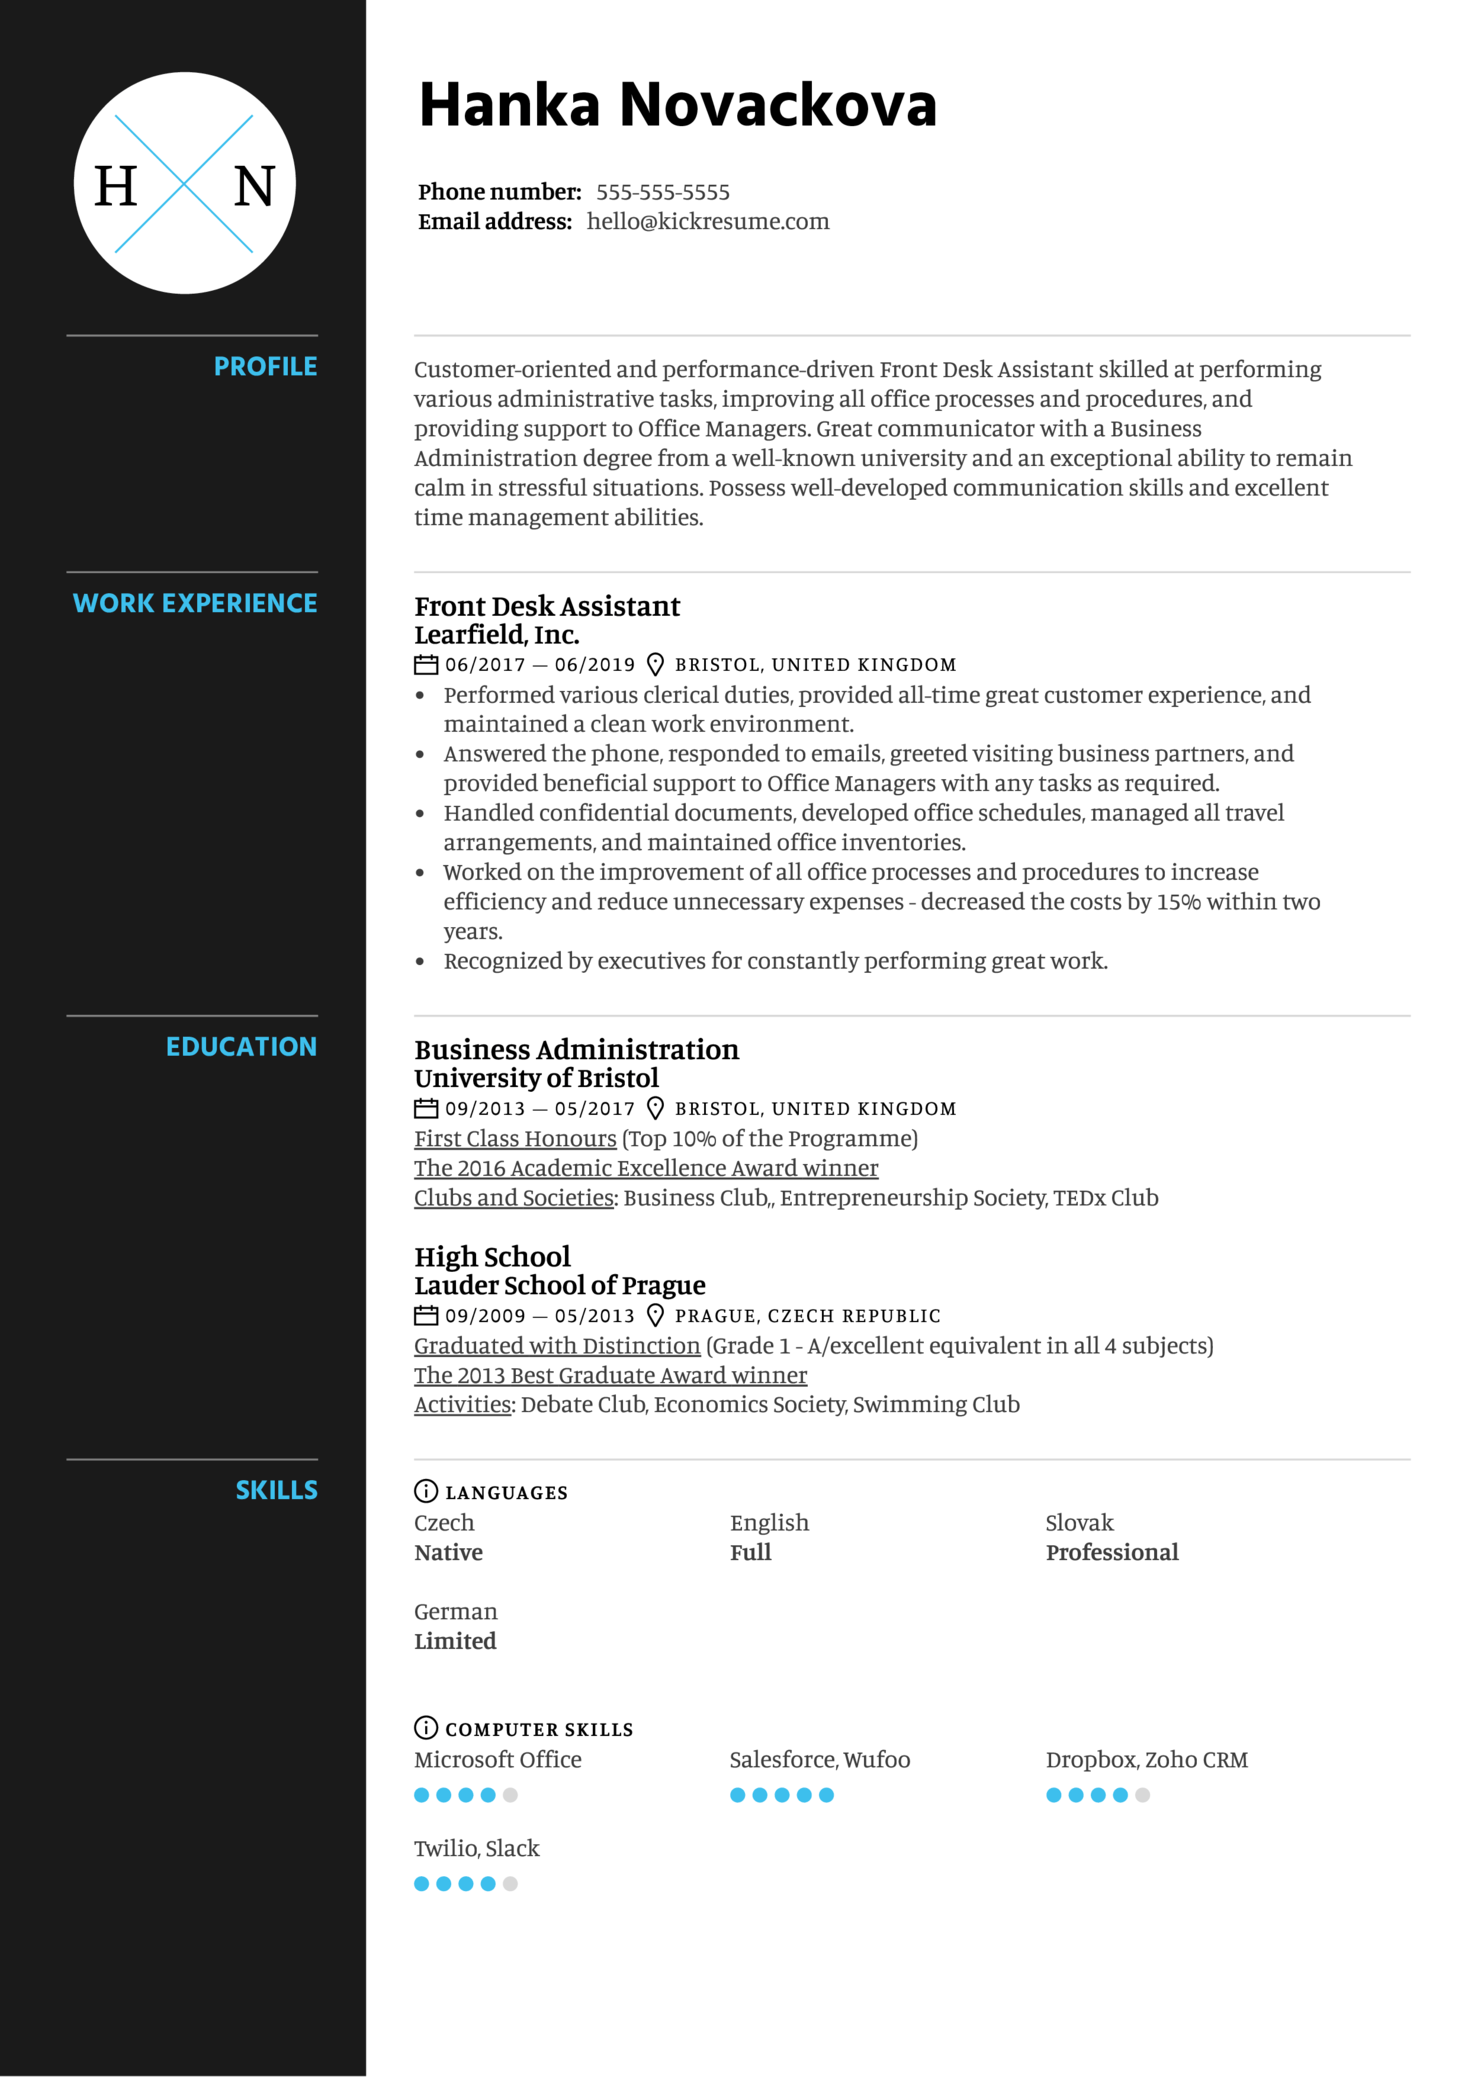 Front Desk Assistant Resume Example (Part 1)